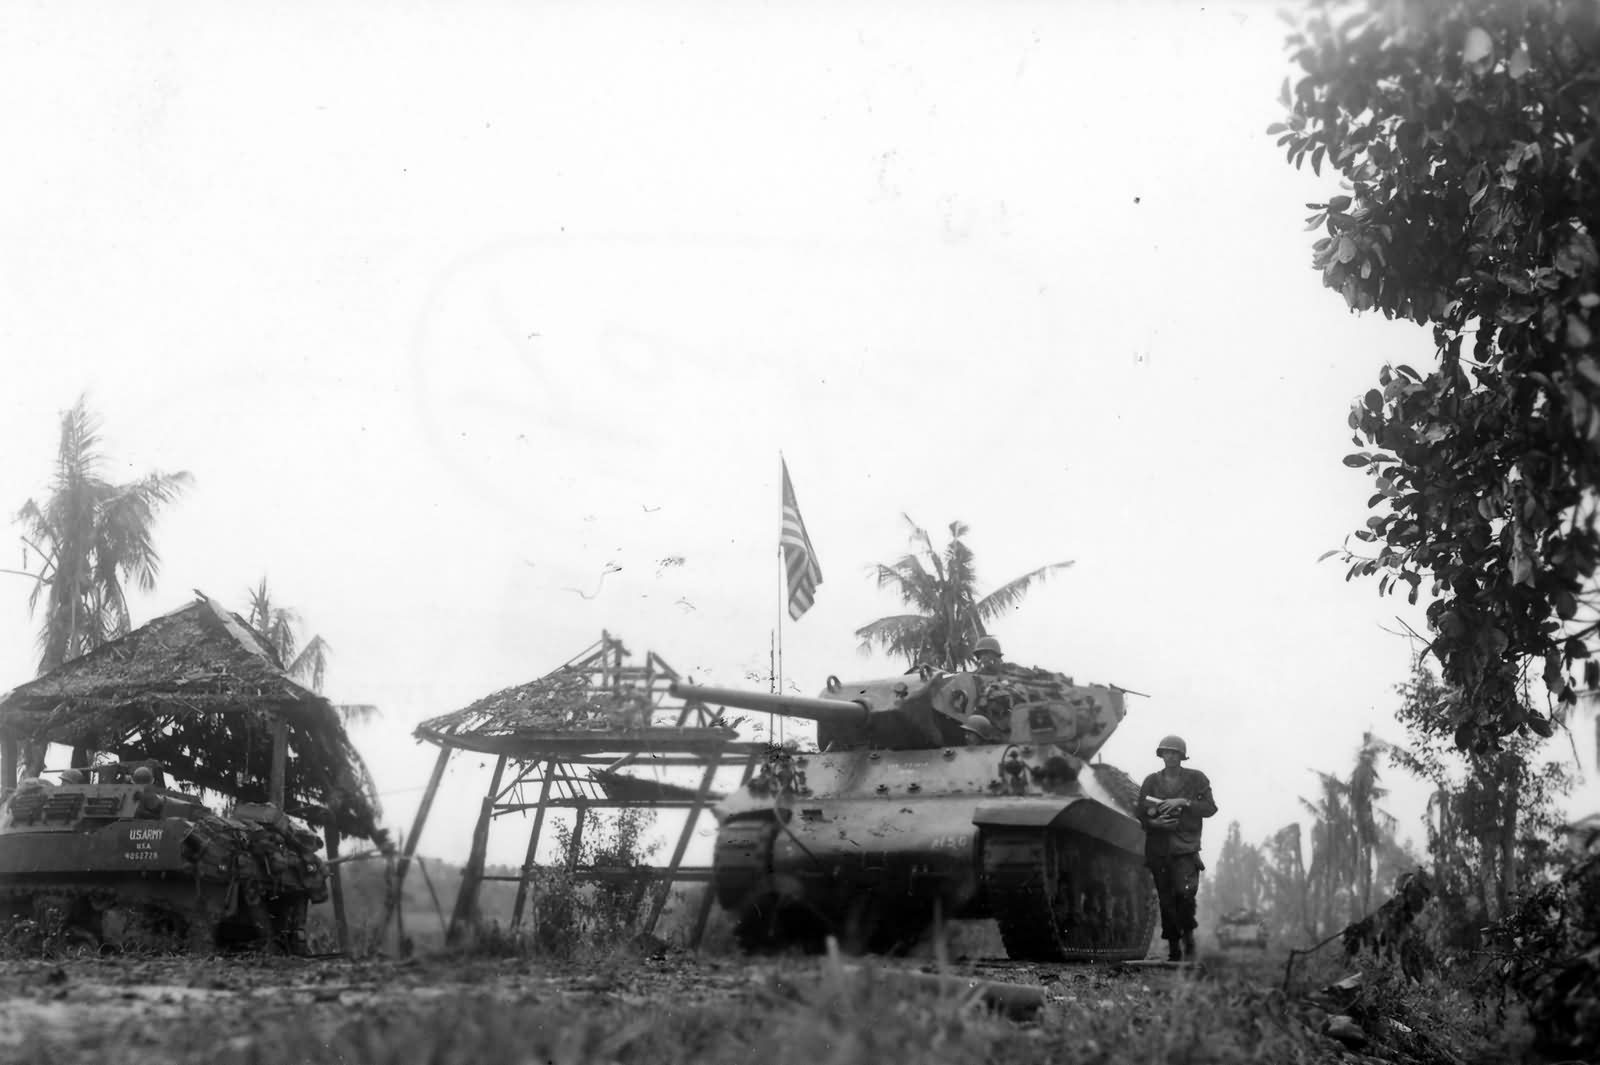 M10_Wolverine_And_M4_Sherman_77th_Infantry_Division_Leyte_Island_1944